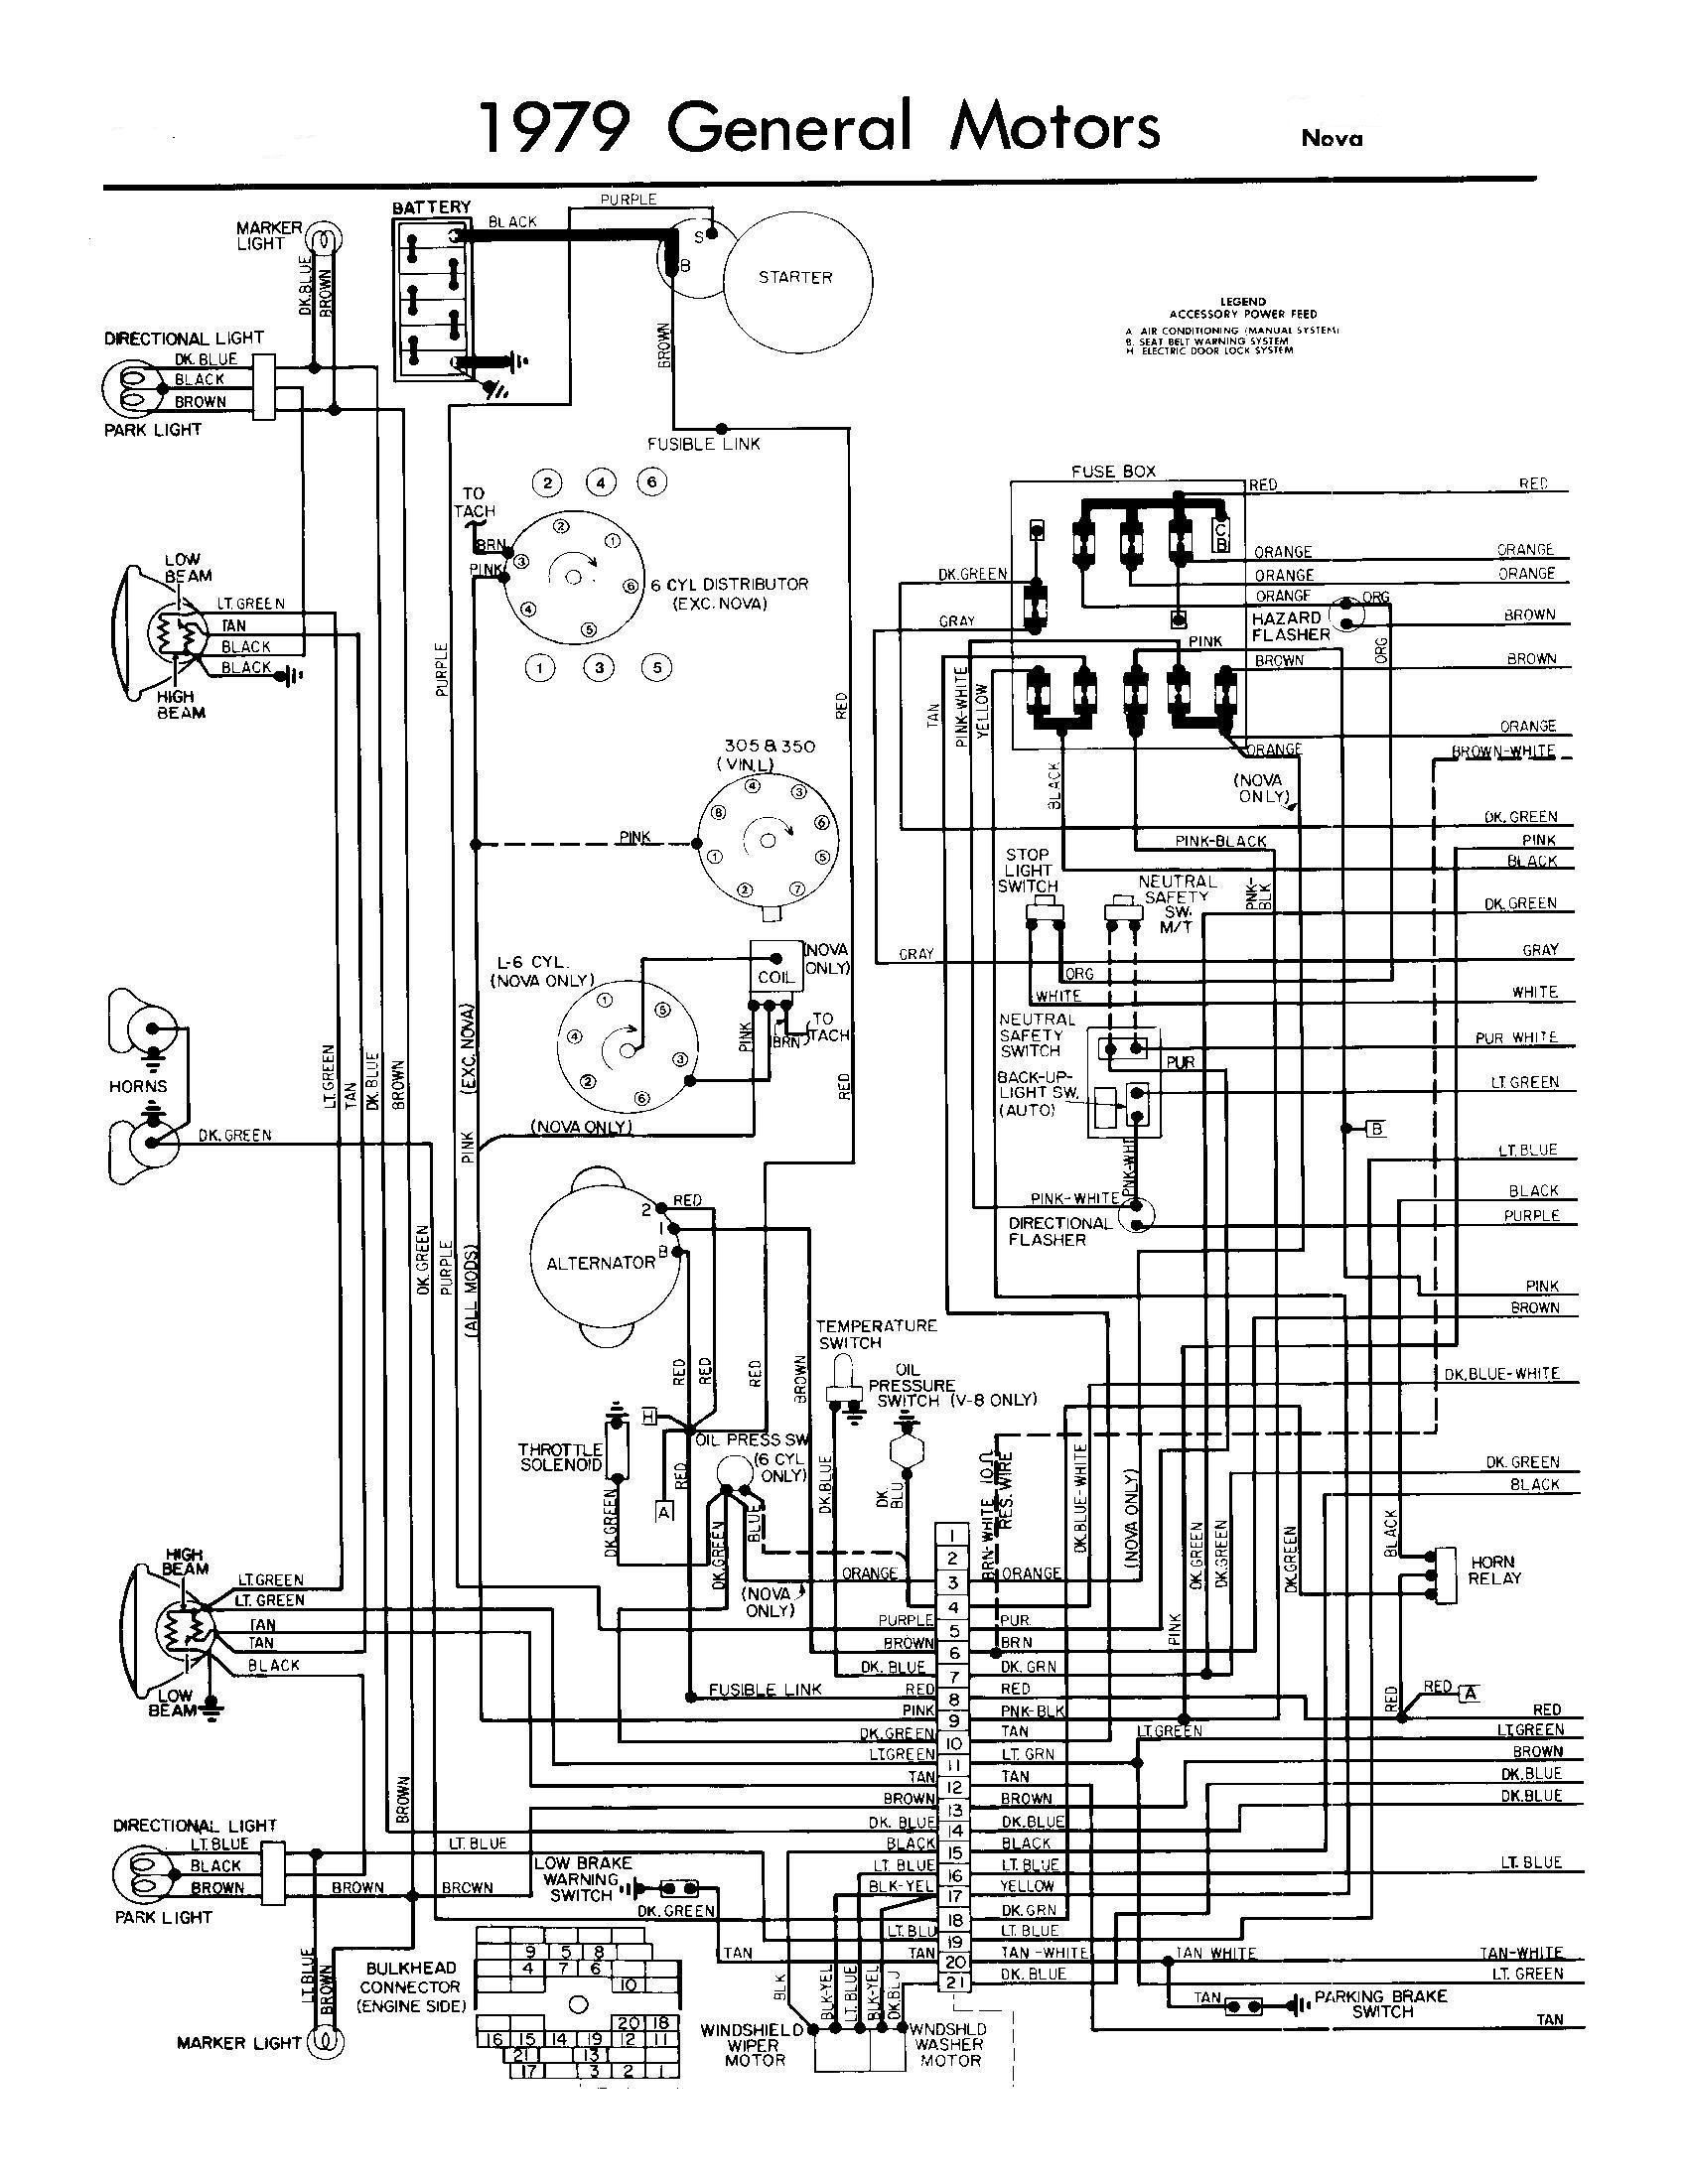 1997 chevy s10 wiring diagram pdf